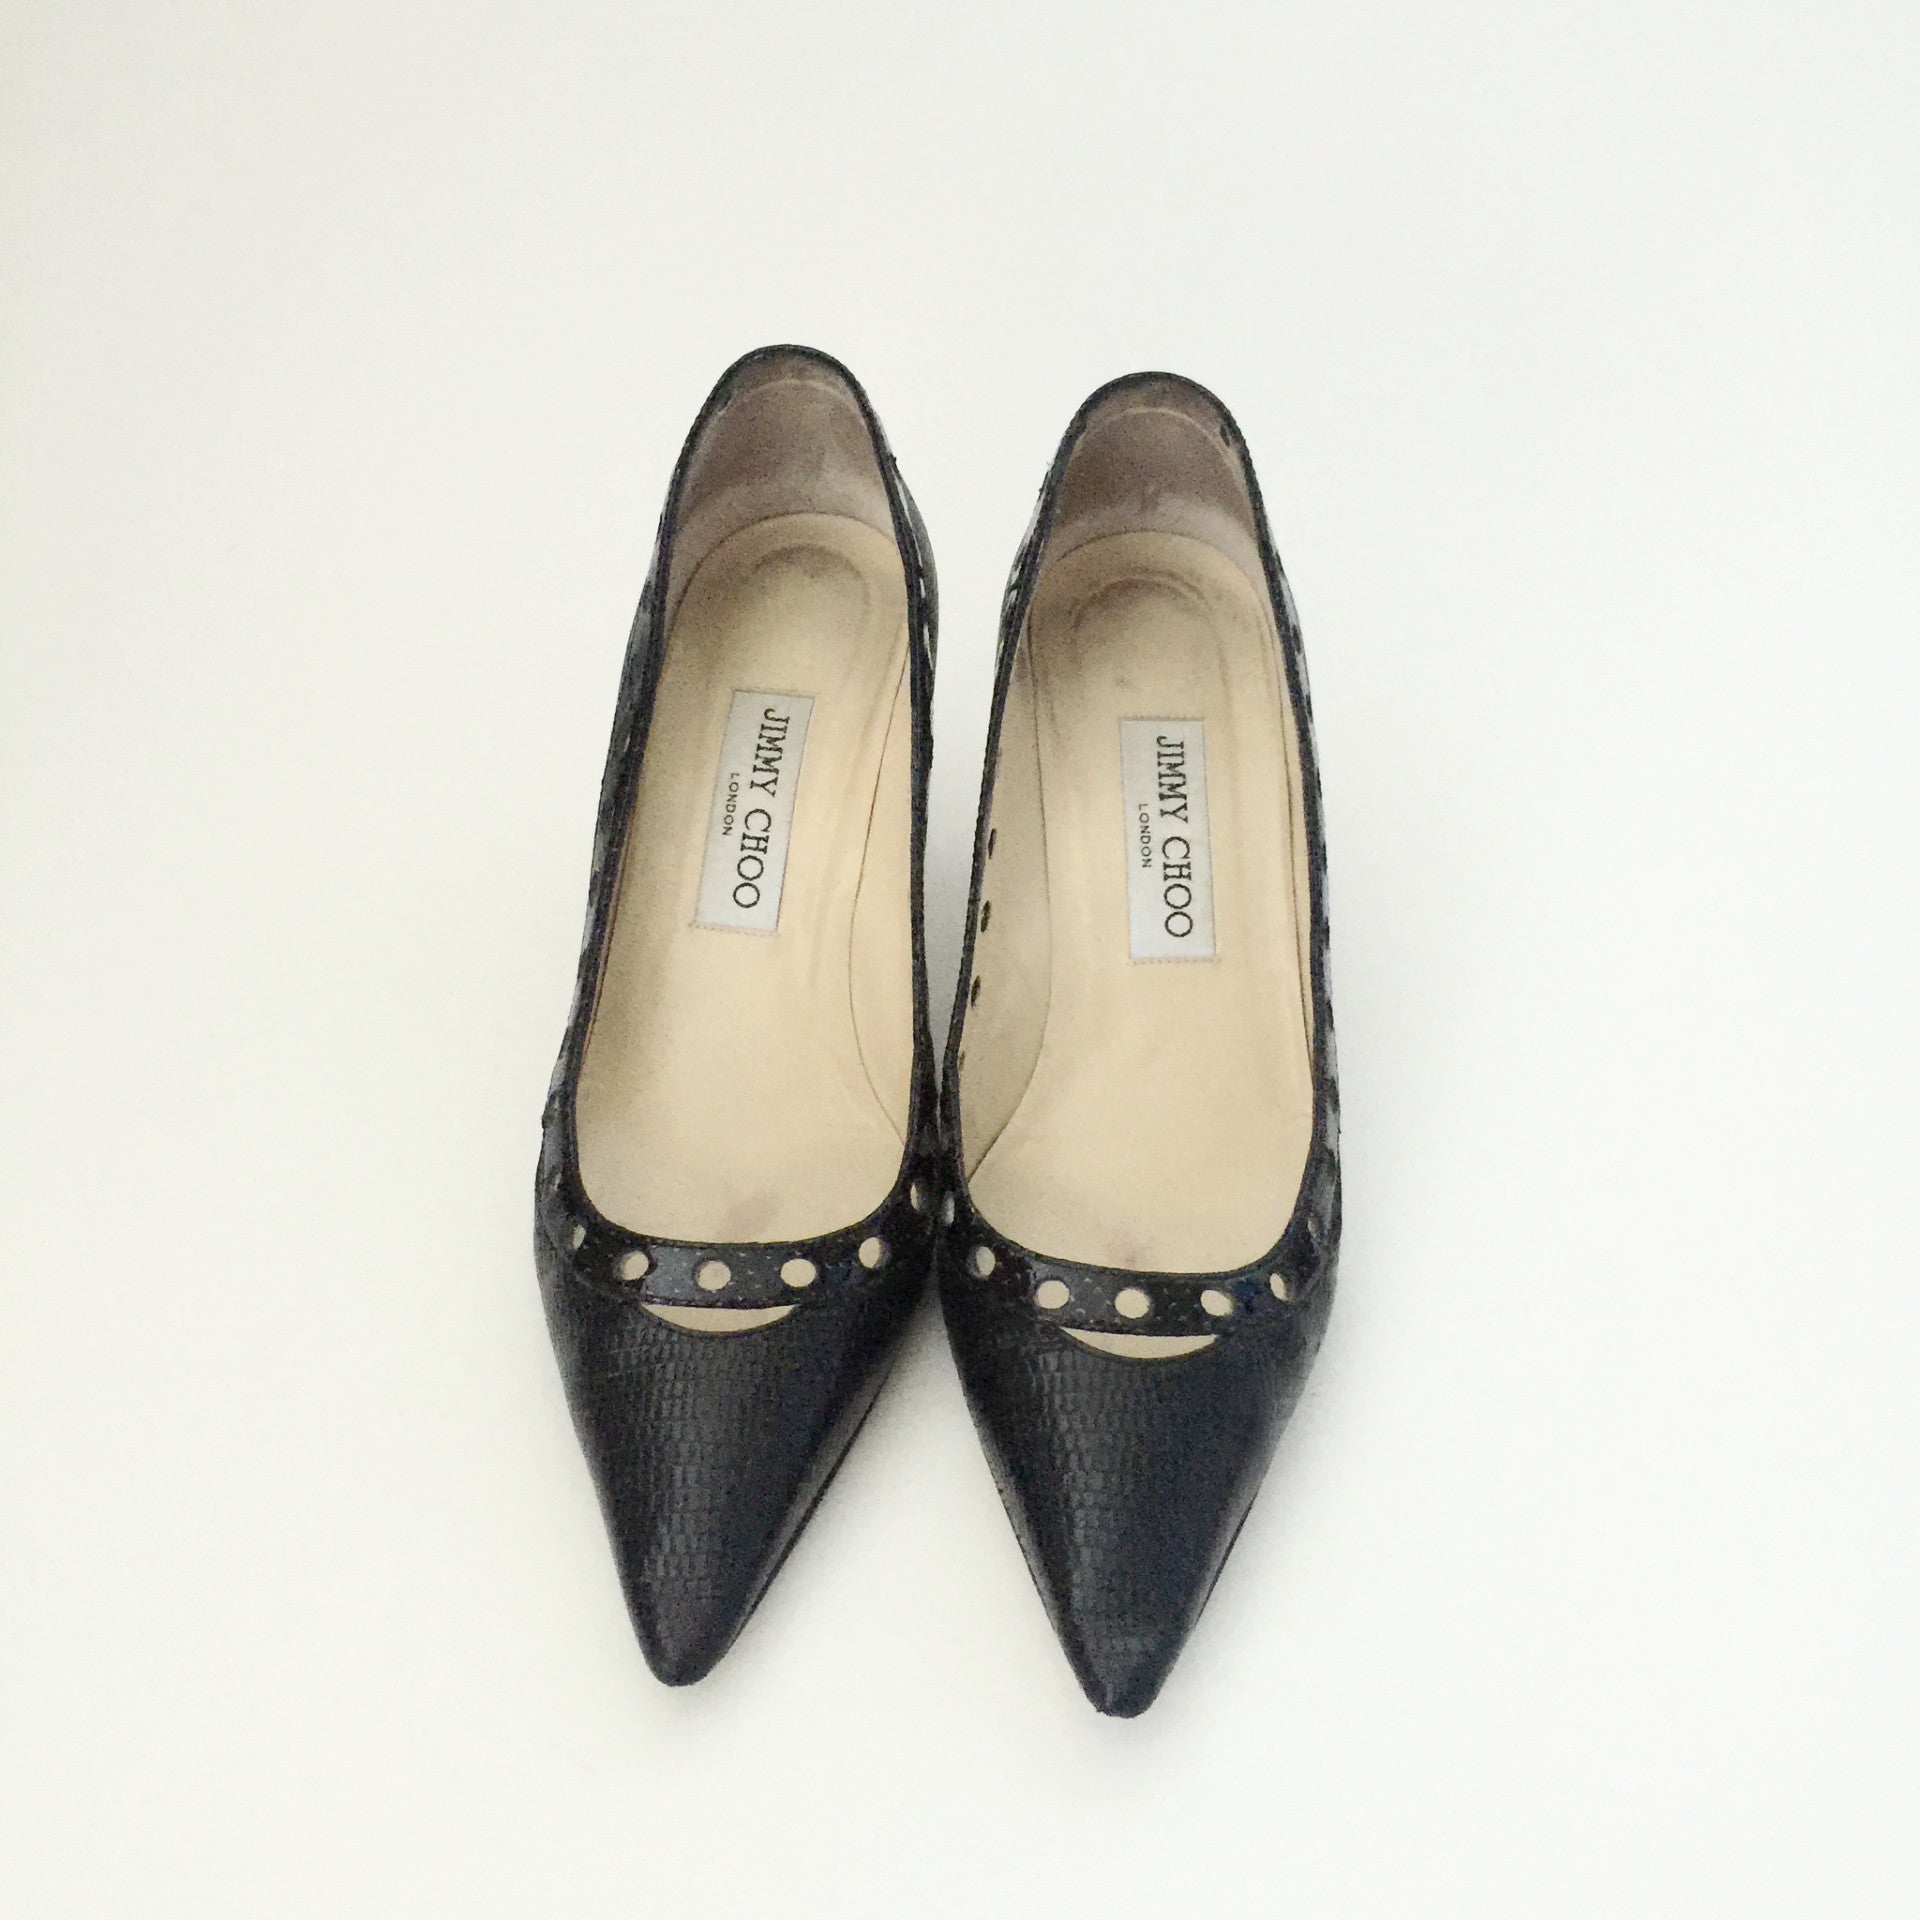 Authentic JIMMY CHOO Black Pumps Size 37